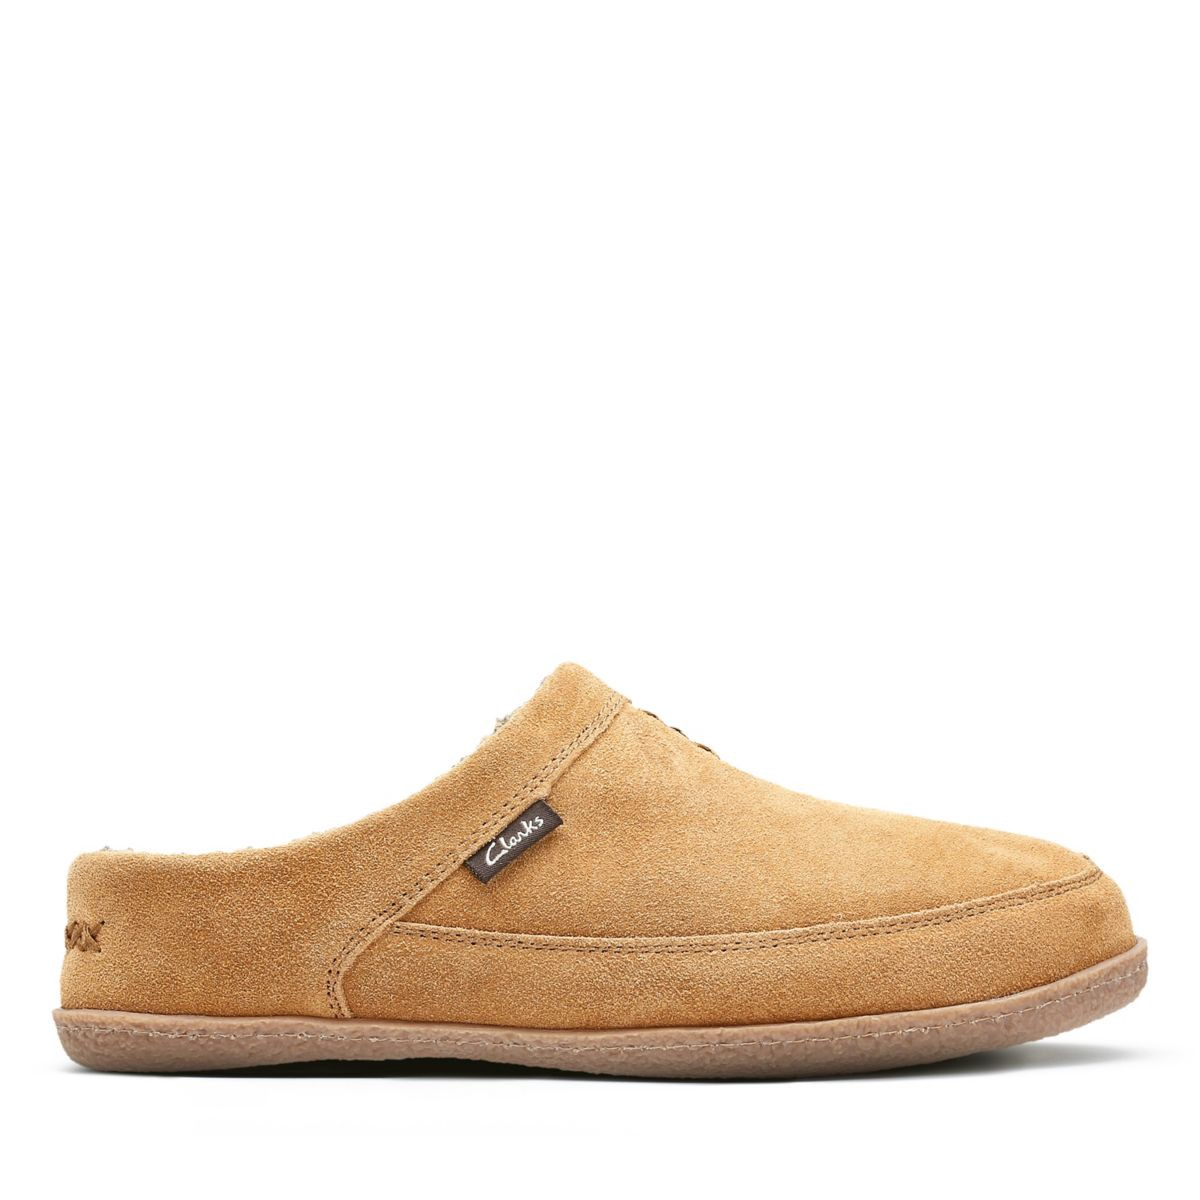 db58aa600a3 Clarks Tyree Porter - Mens Slippers Tan 8 | Products | Mens slippers ...